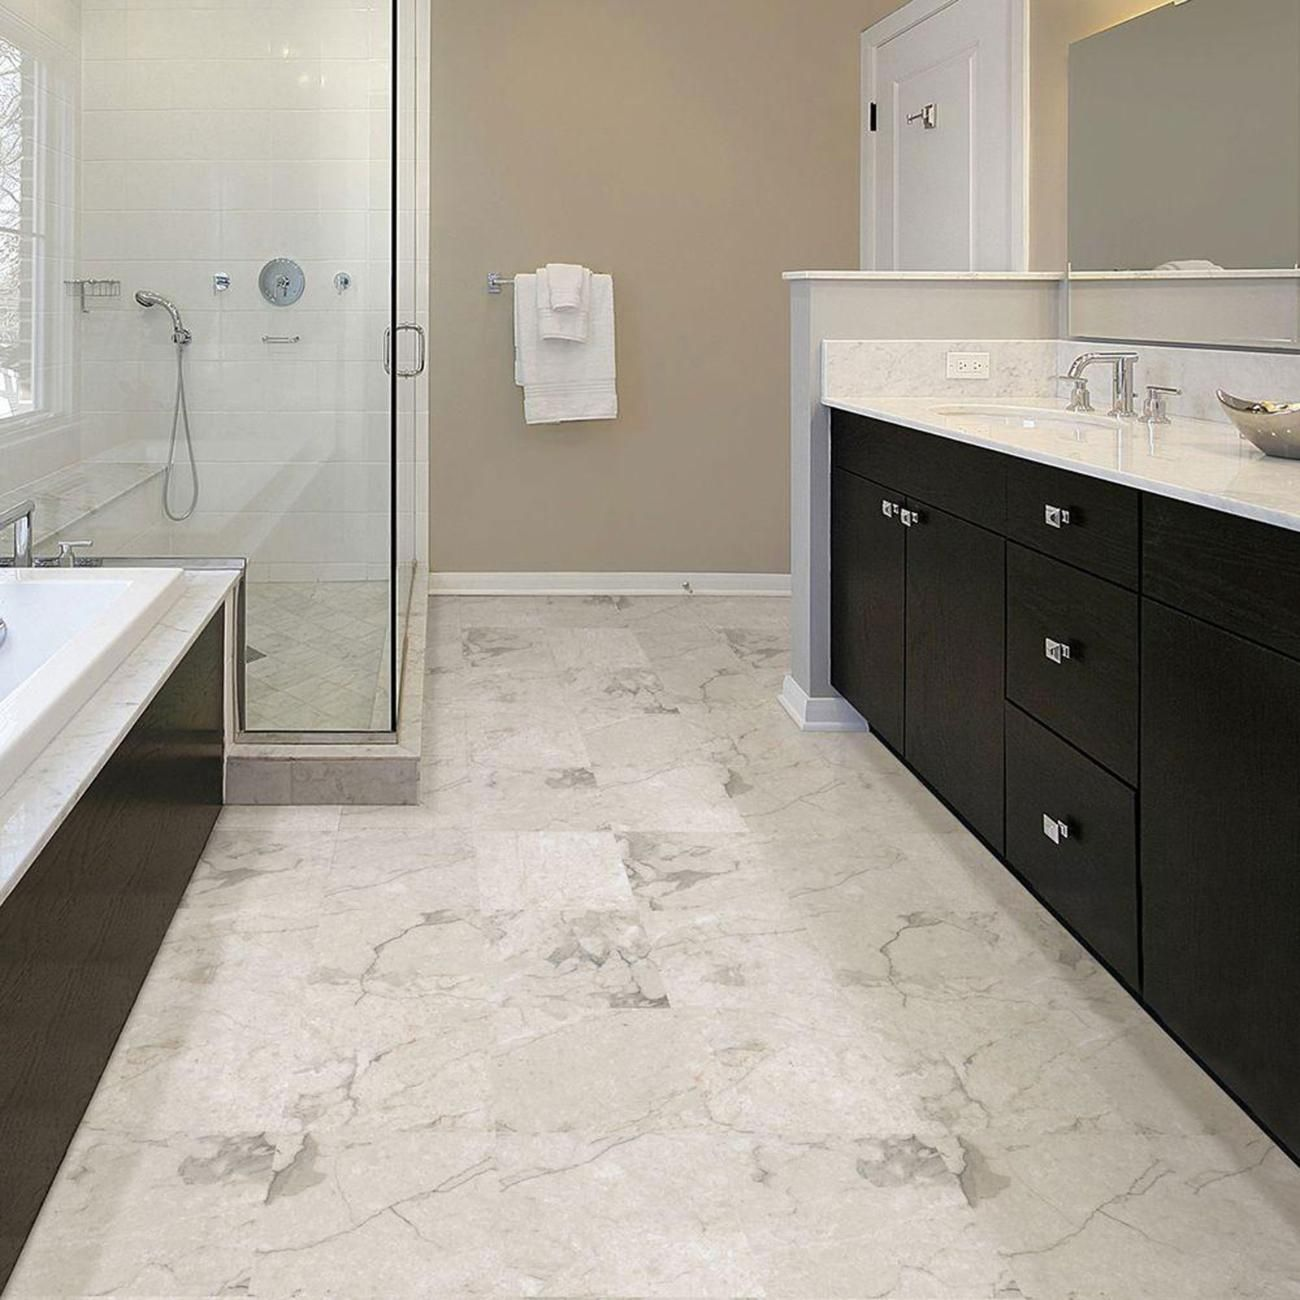 Exchange Ideas And Find Inspiration On Interior Decor And Design Tips Home Organization Ideas De Vinyl Flooring Bathroom Bathroom Vinyl Marble Bathroom Floor